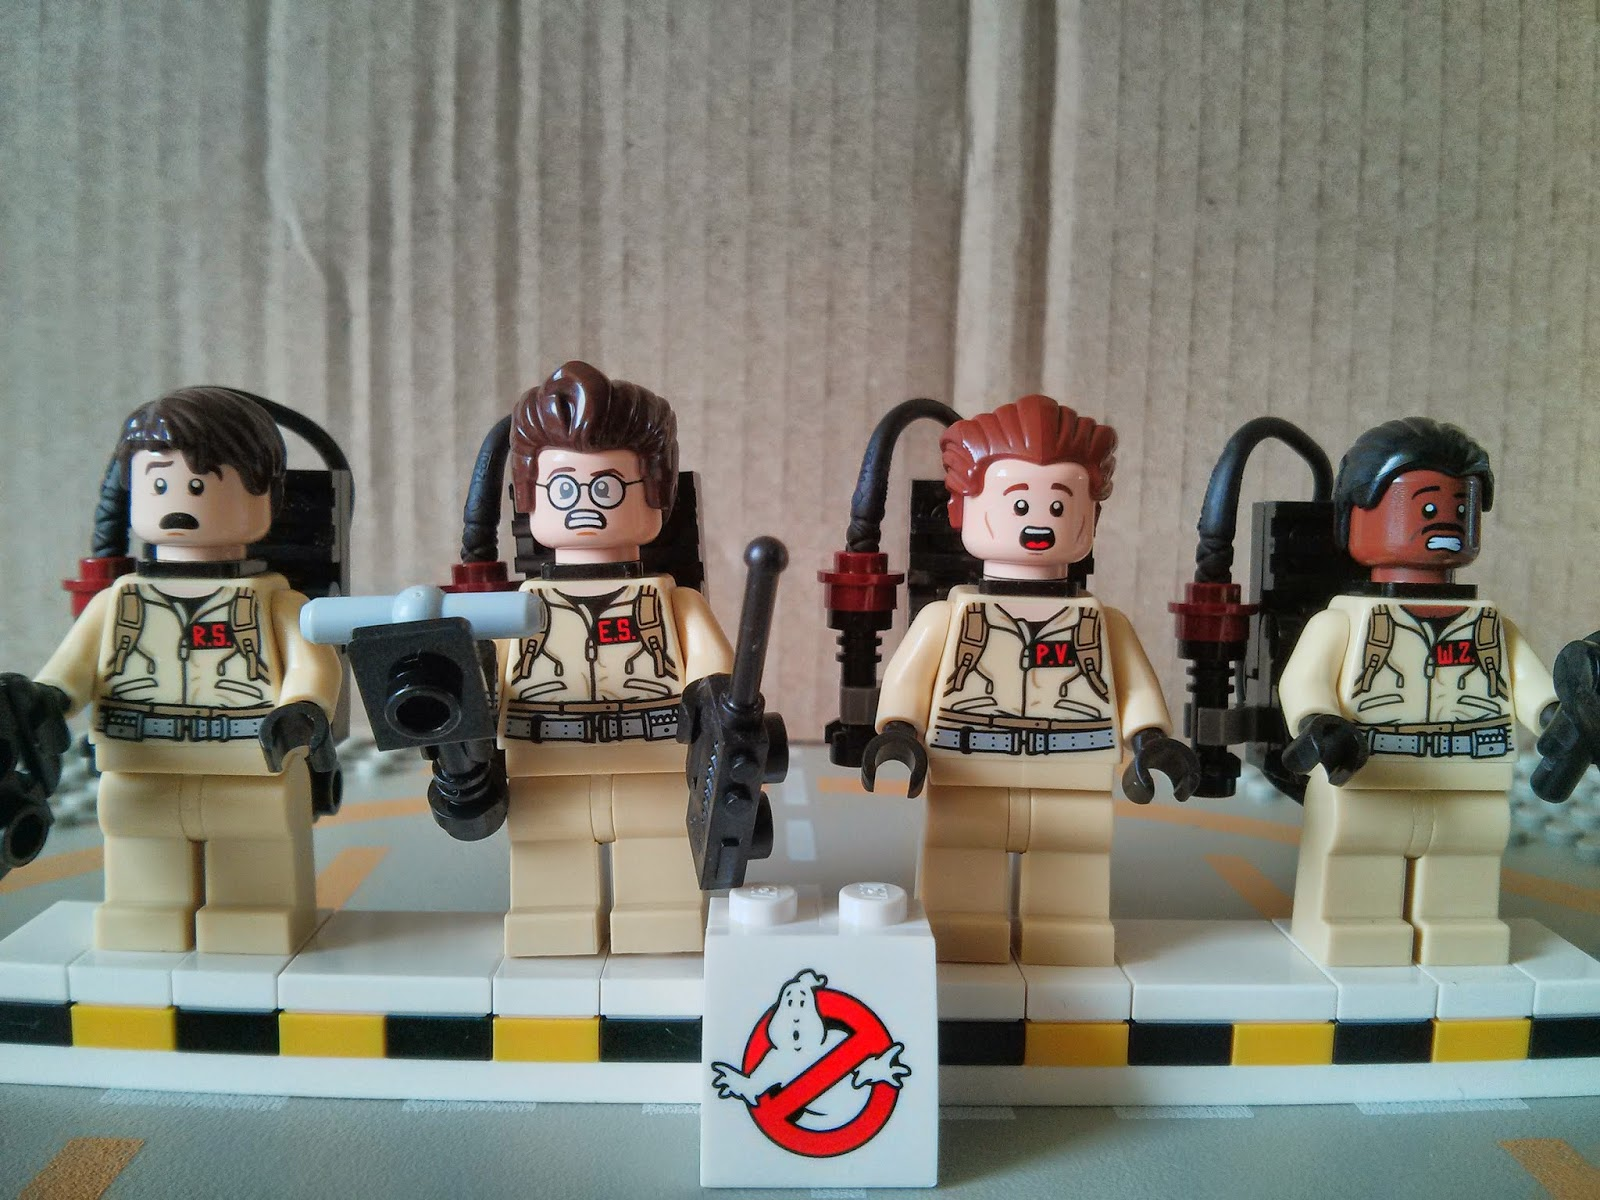 A look at the alt faces the ghostbusters have